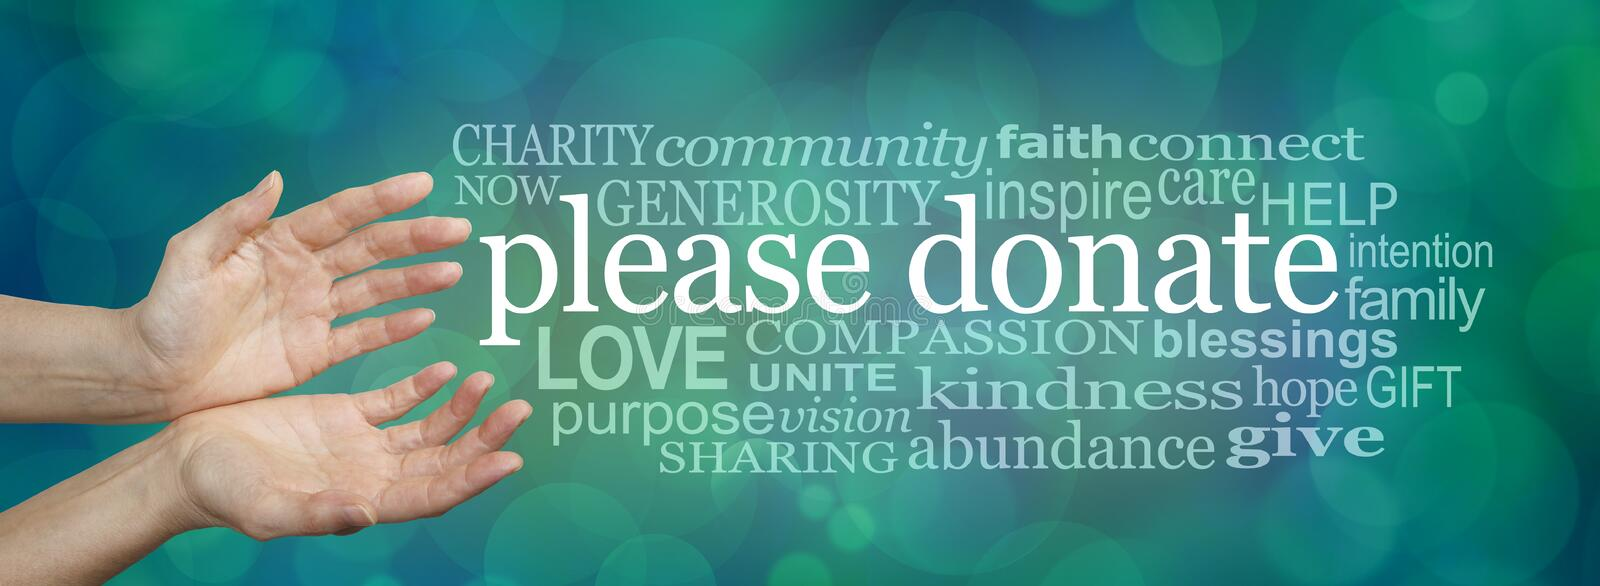 Please donate fund raising word cloud banner royalty free stock images